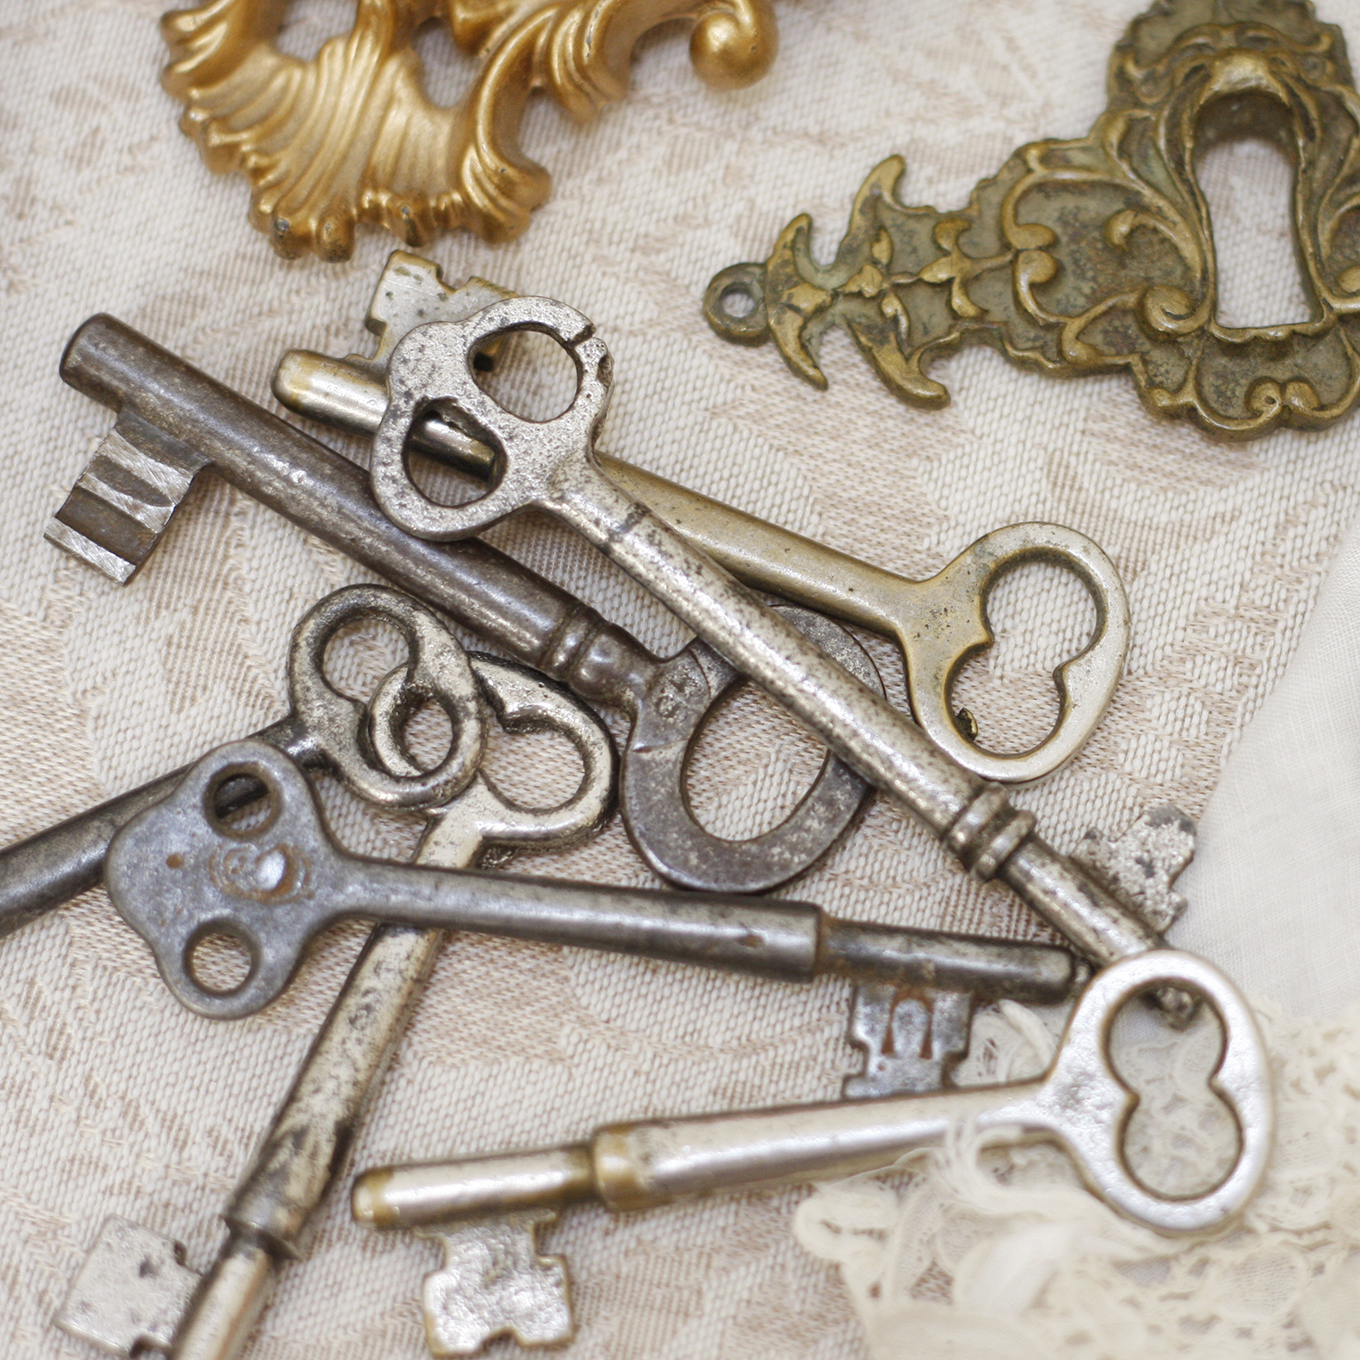 Paige Smith Designs_Vintage Keys_MG_2710